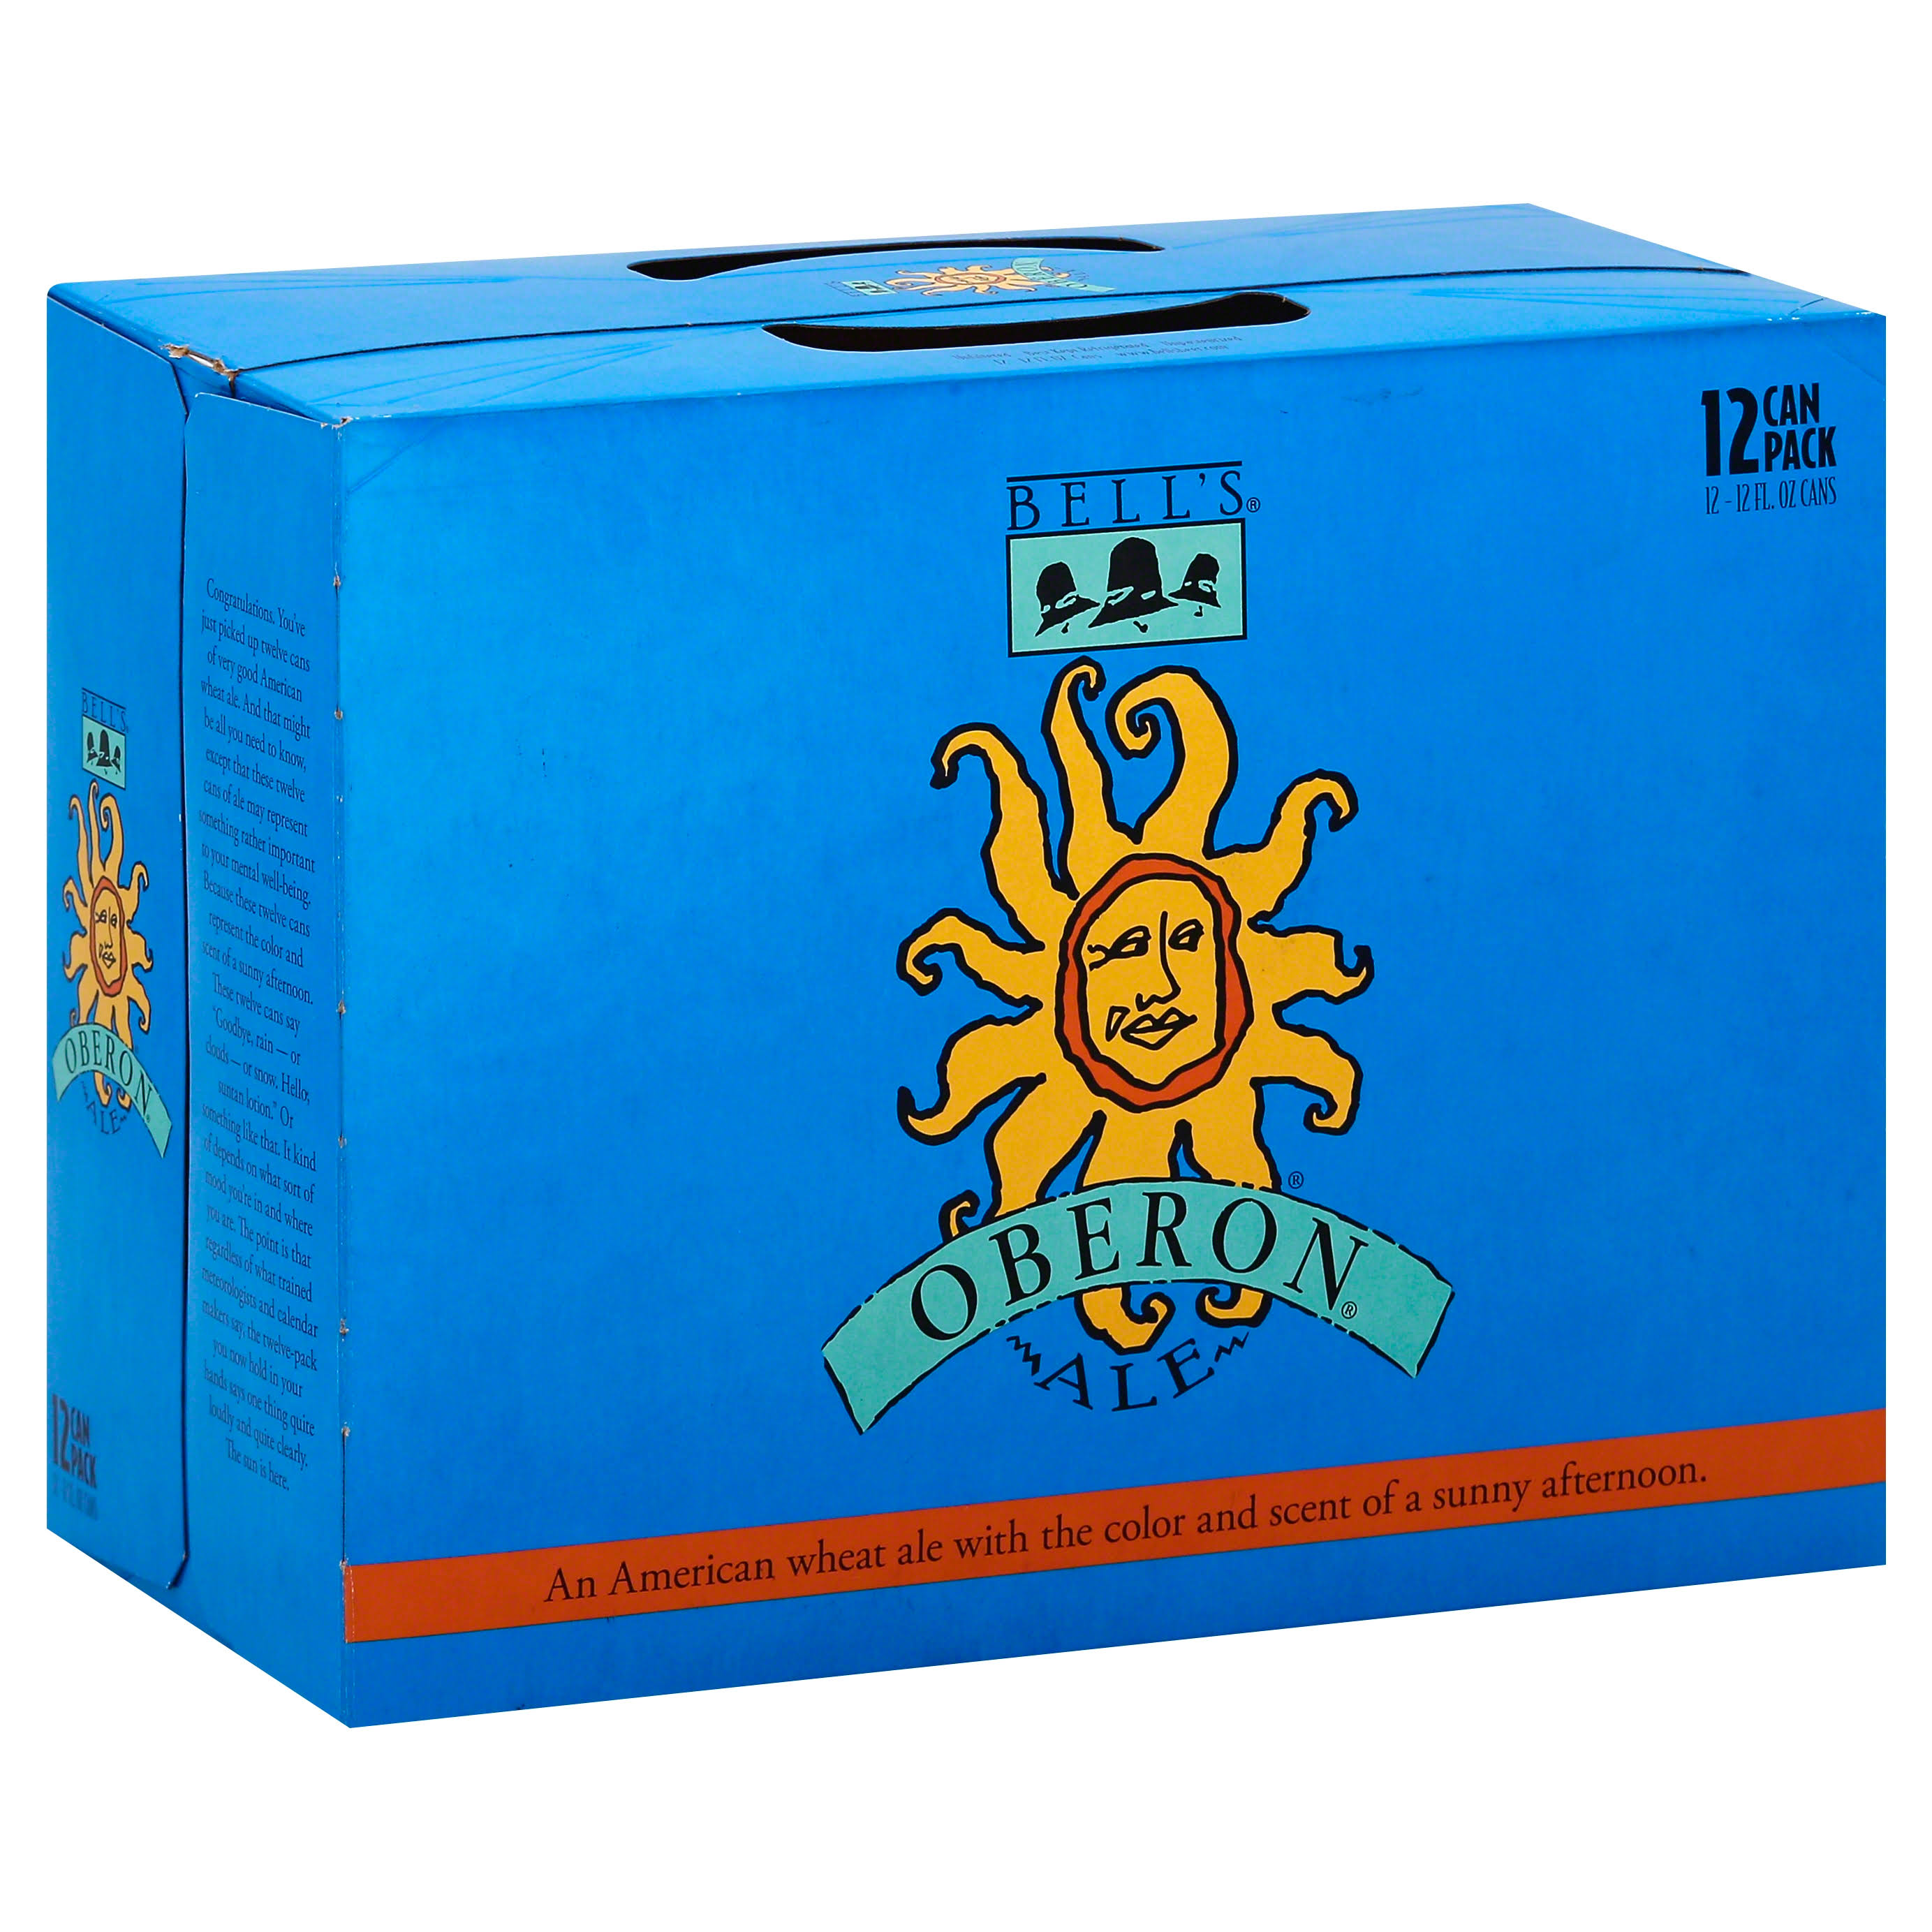 Bells Beer, Ale, Oberon, 12 Can Pack - 12 pack, 12 fl oz cans